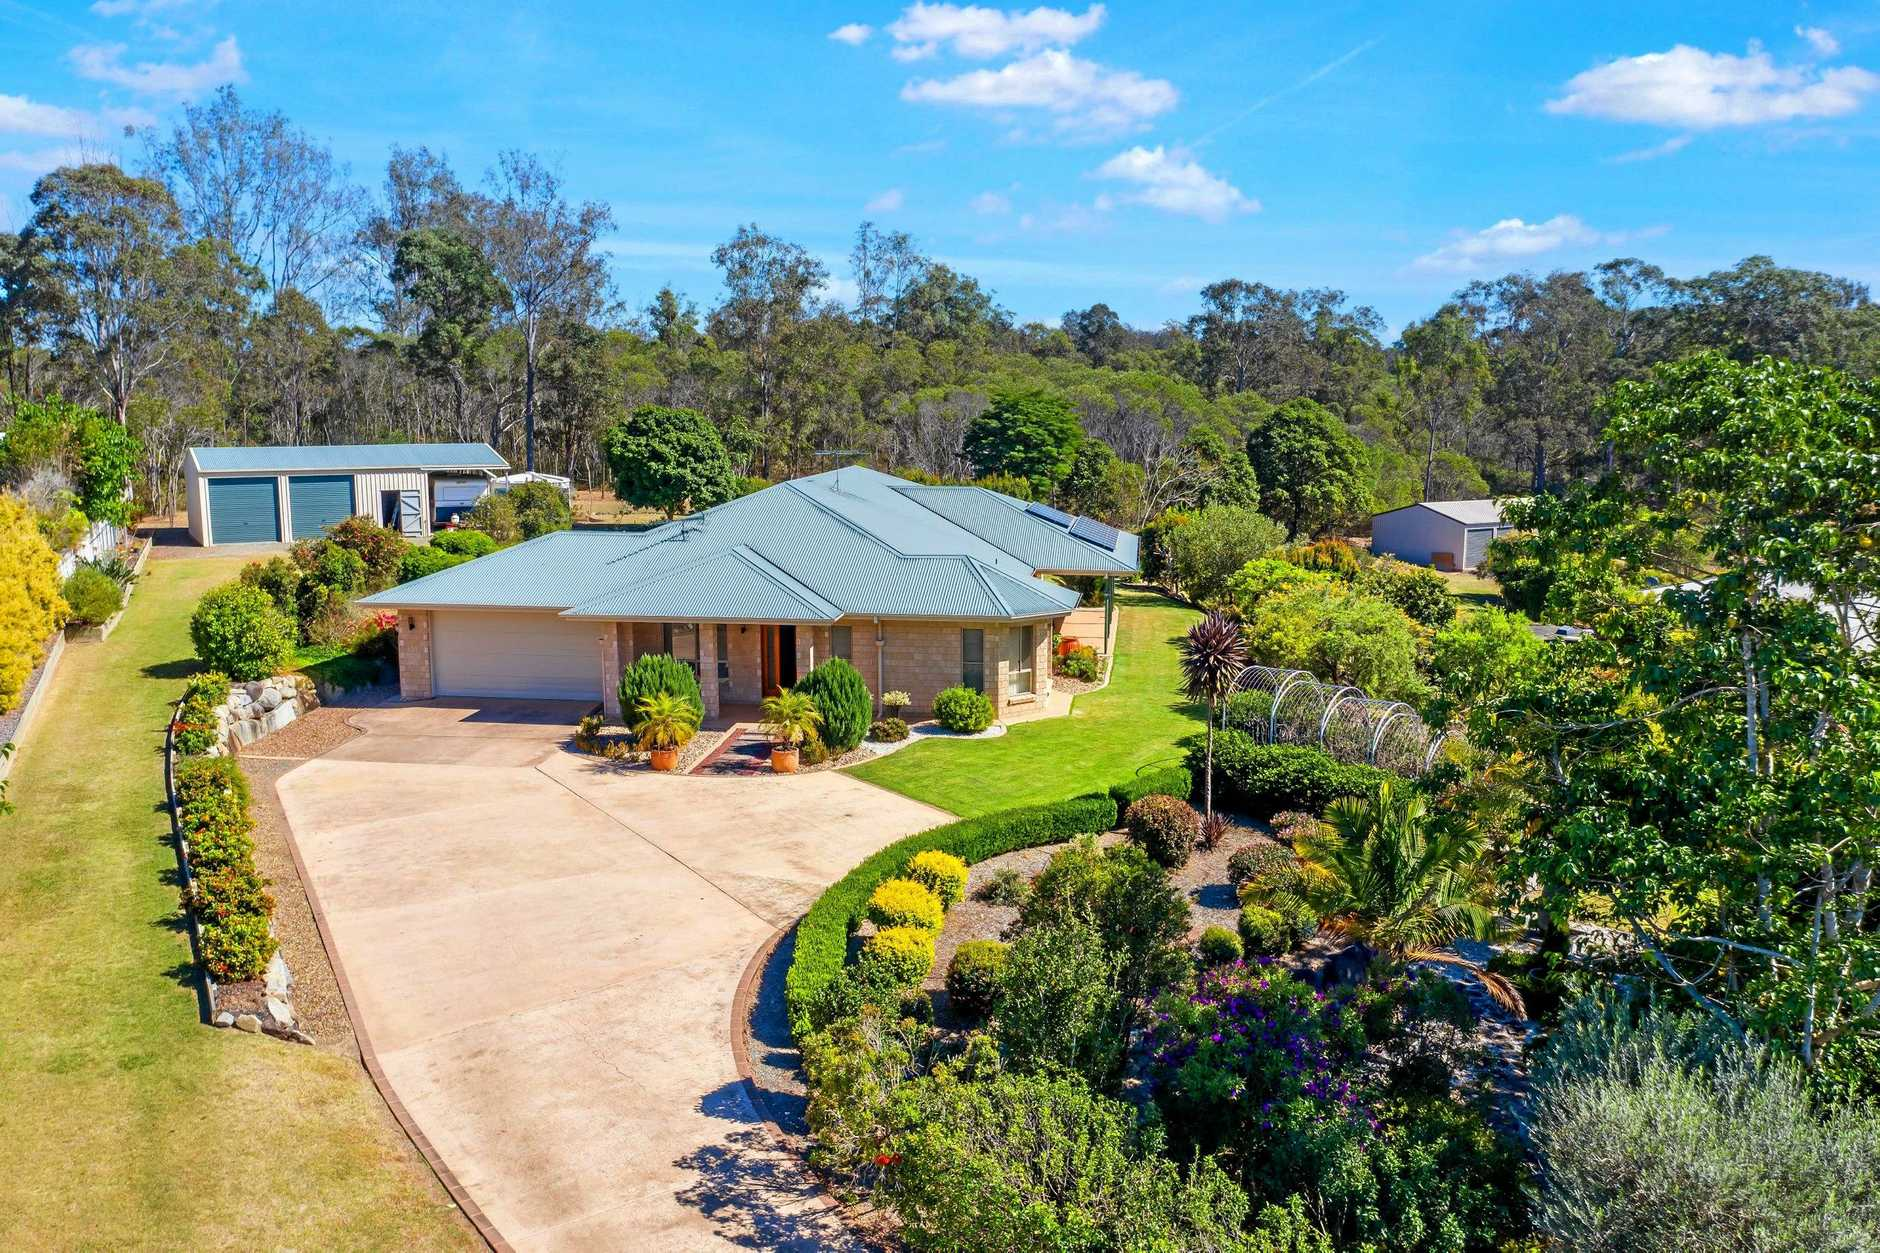 OPEN FOR INSPECTION: Come along and check out 27 Azure Avenue, Banks Pocket this weekend.